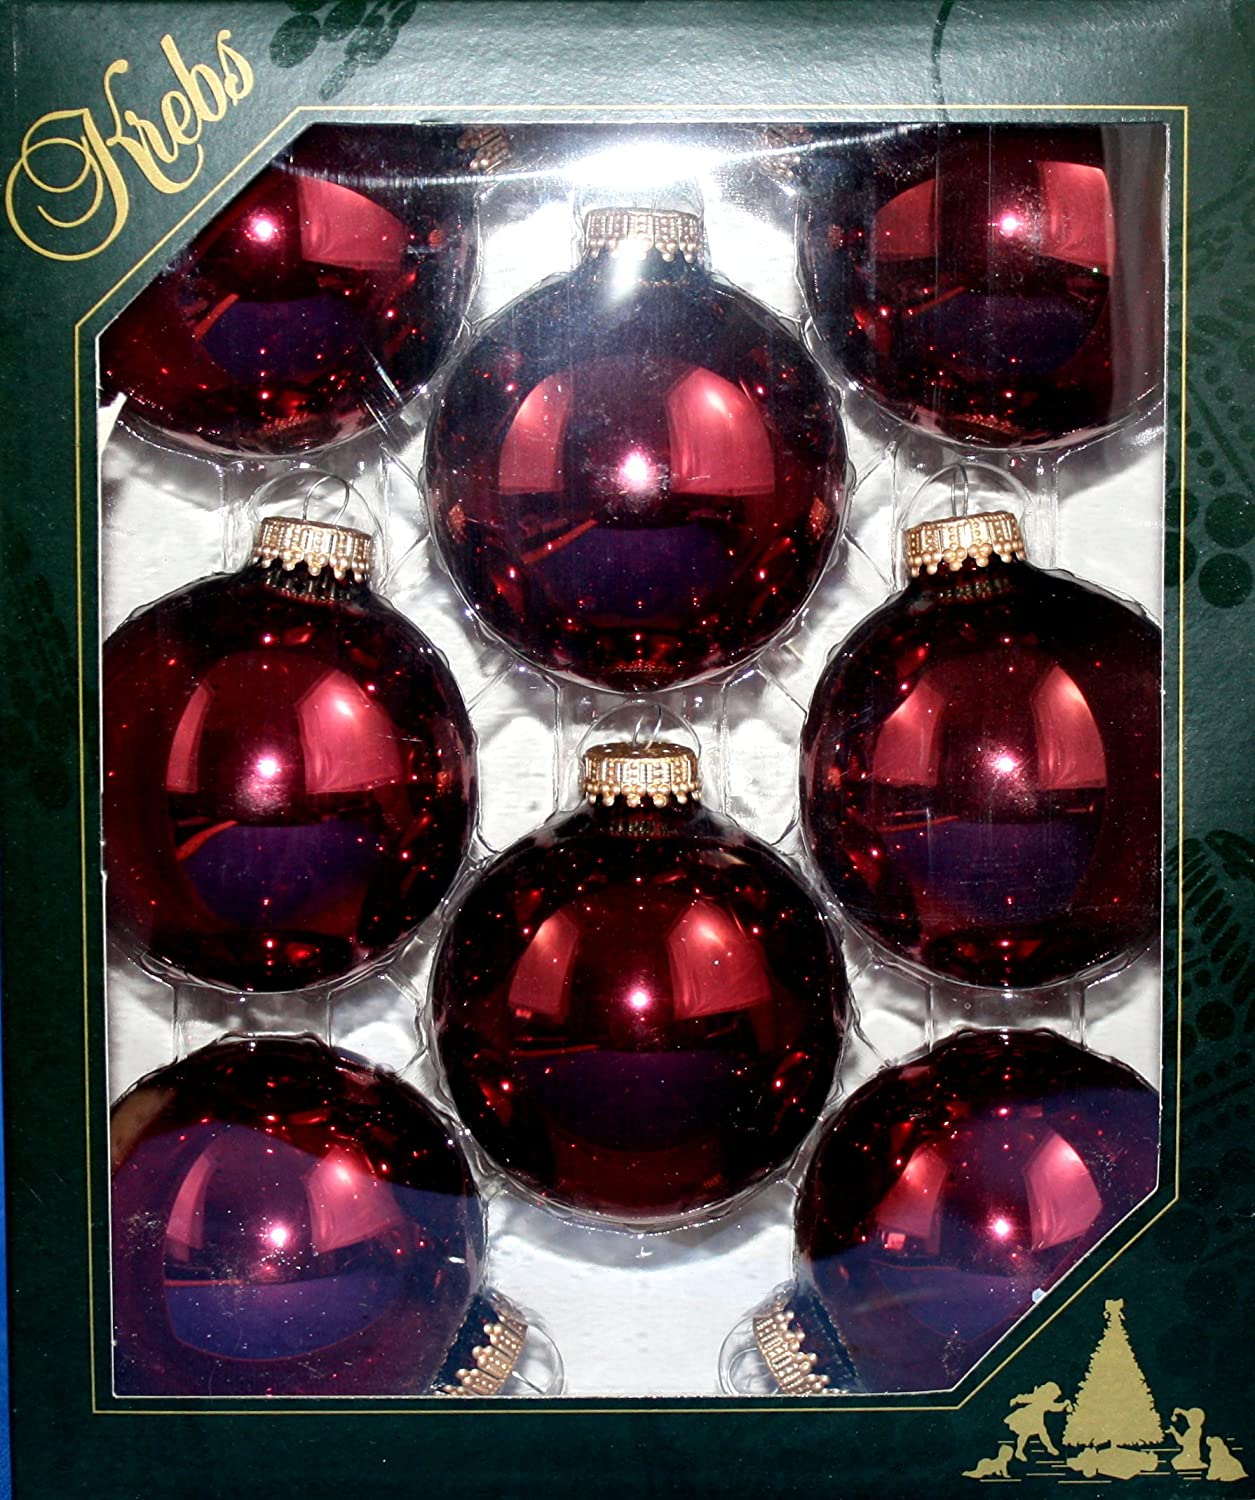 Krebs Distinctive Glass Ornament 8 Pack with Gold Crowns (Burgundy Red) Christmas By Krebs